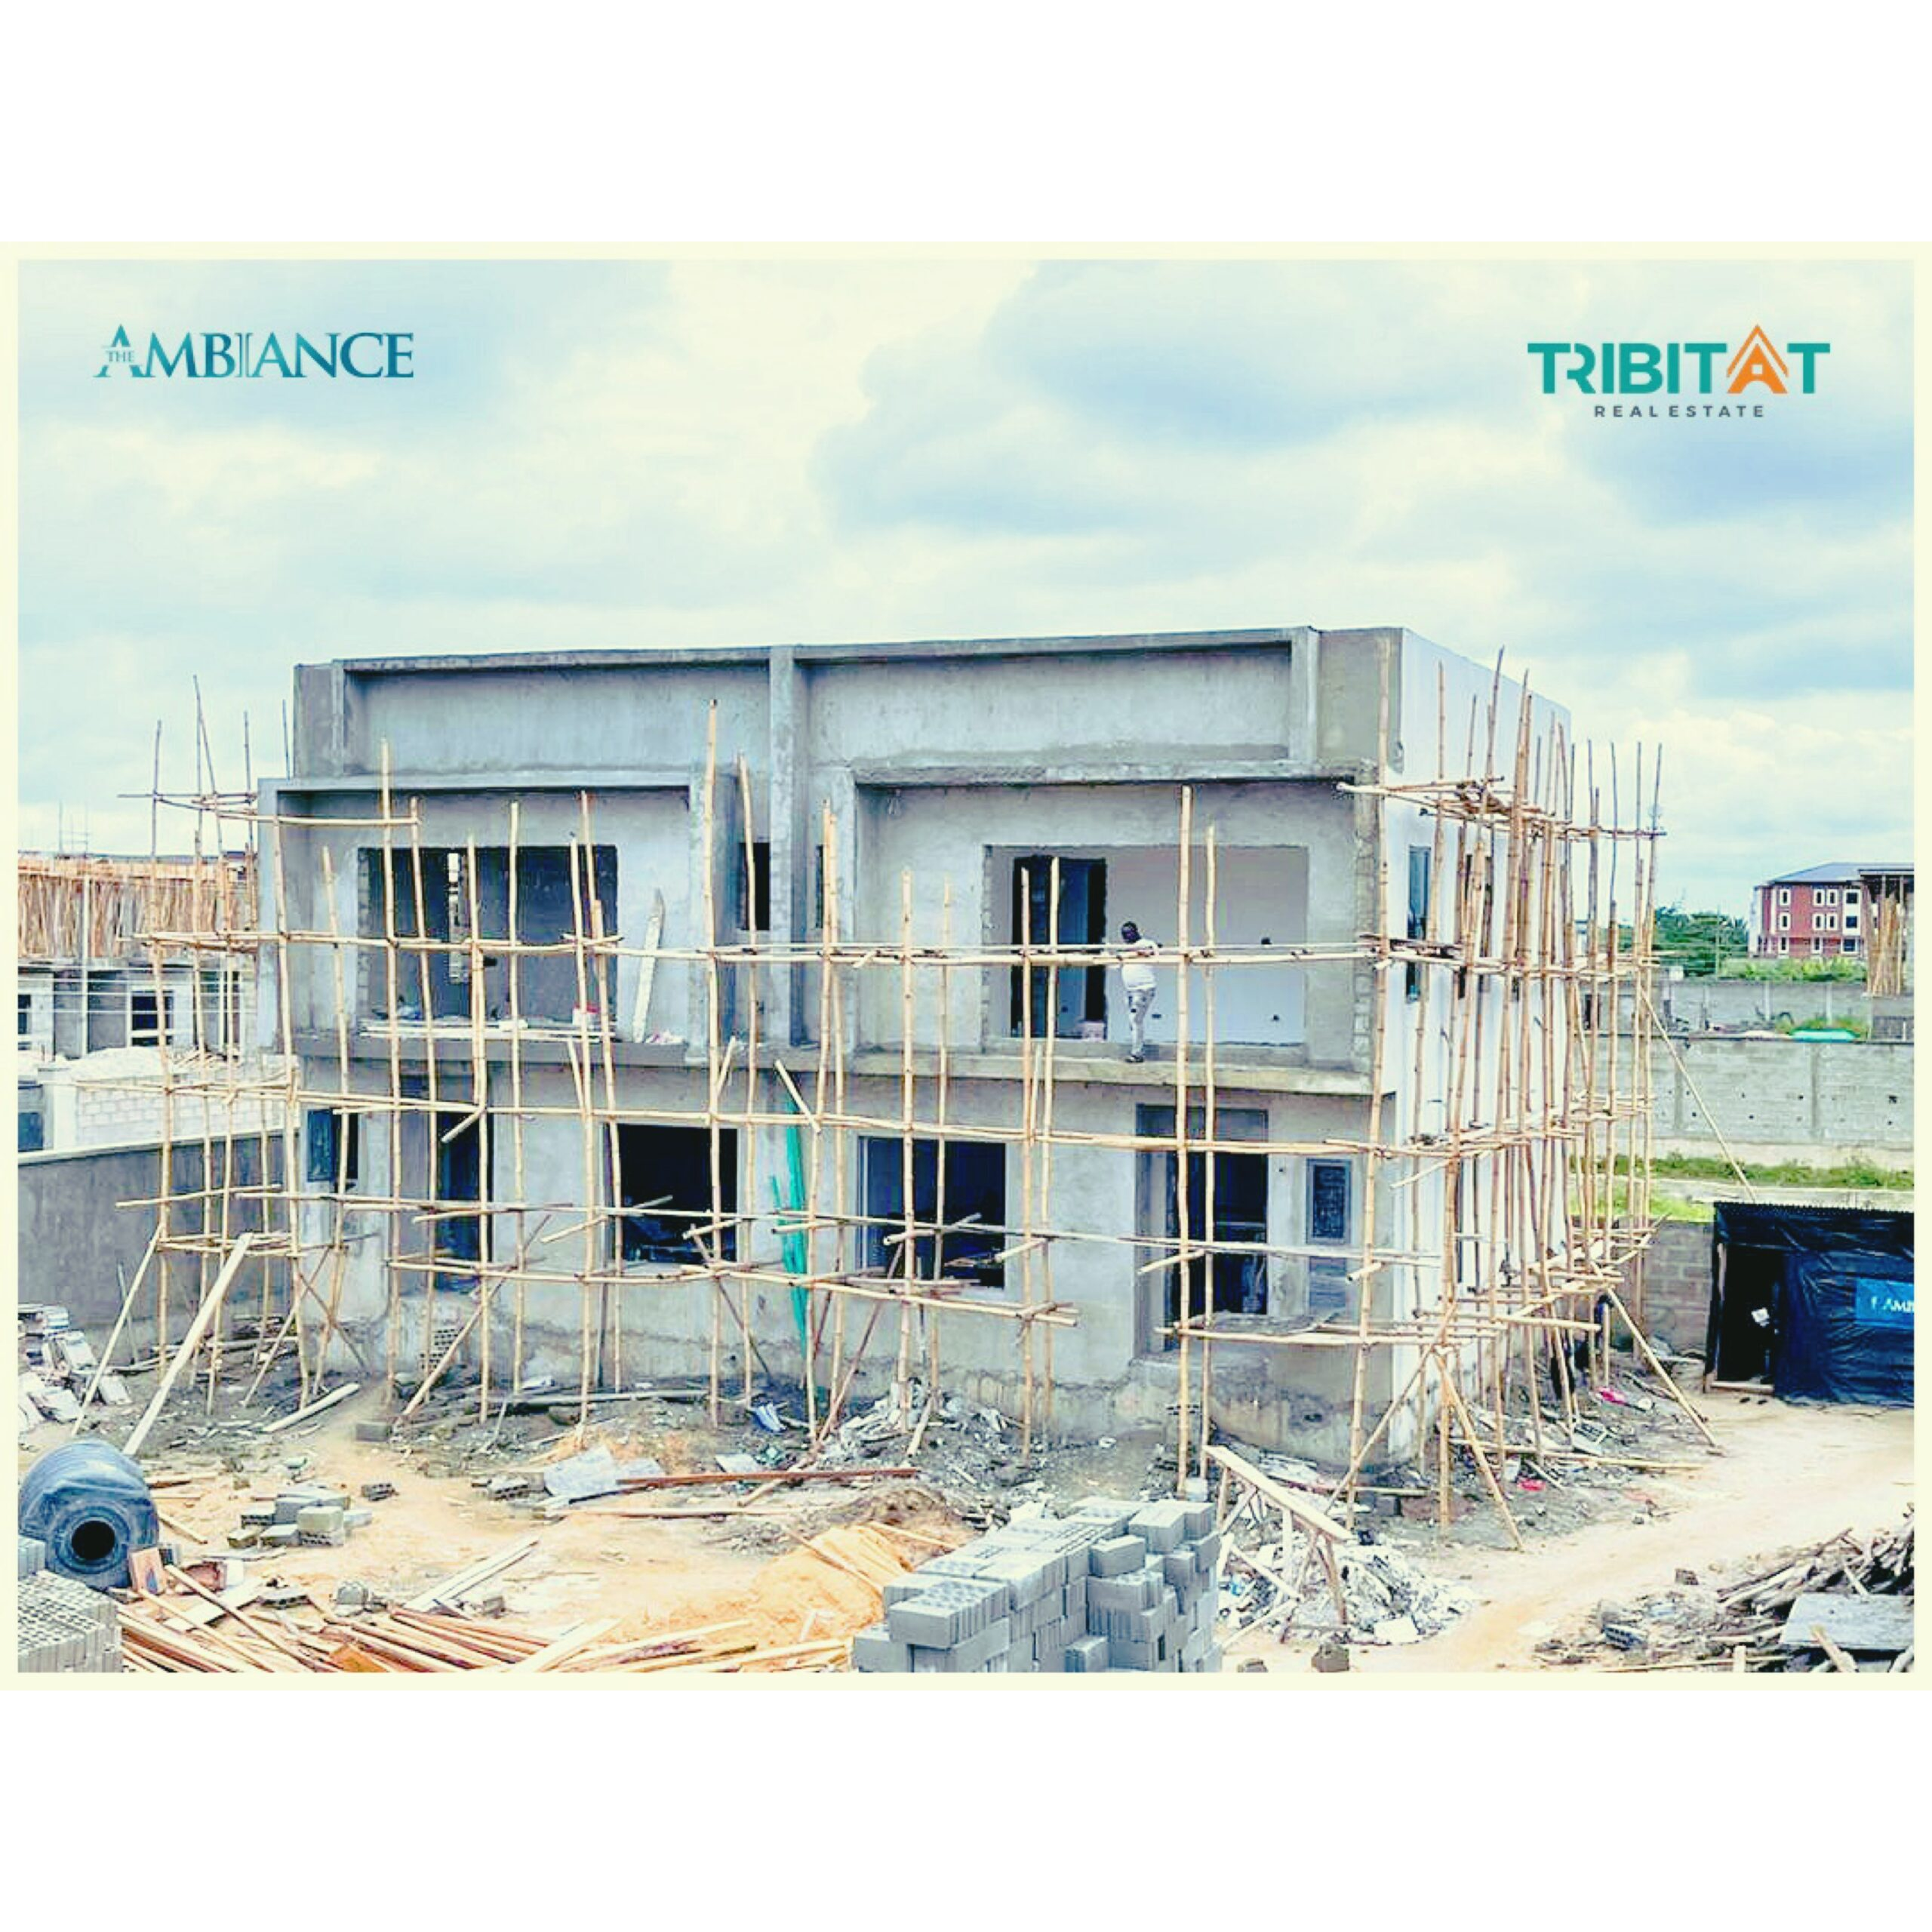 4 BEDROOM DETACHED PENTHOUSE DUPLEX WITH BQ AT THE AMBIANCE